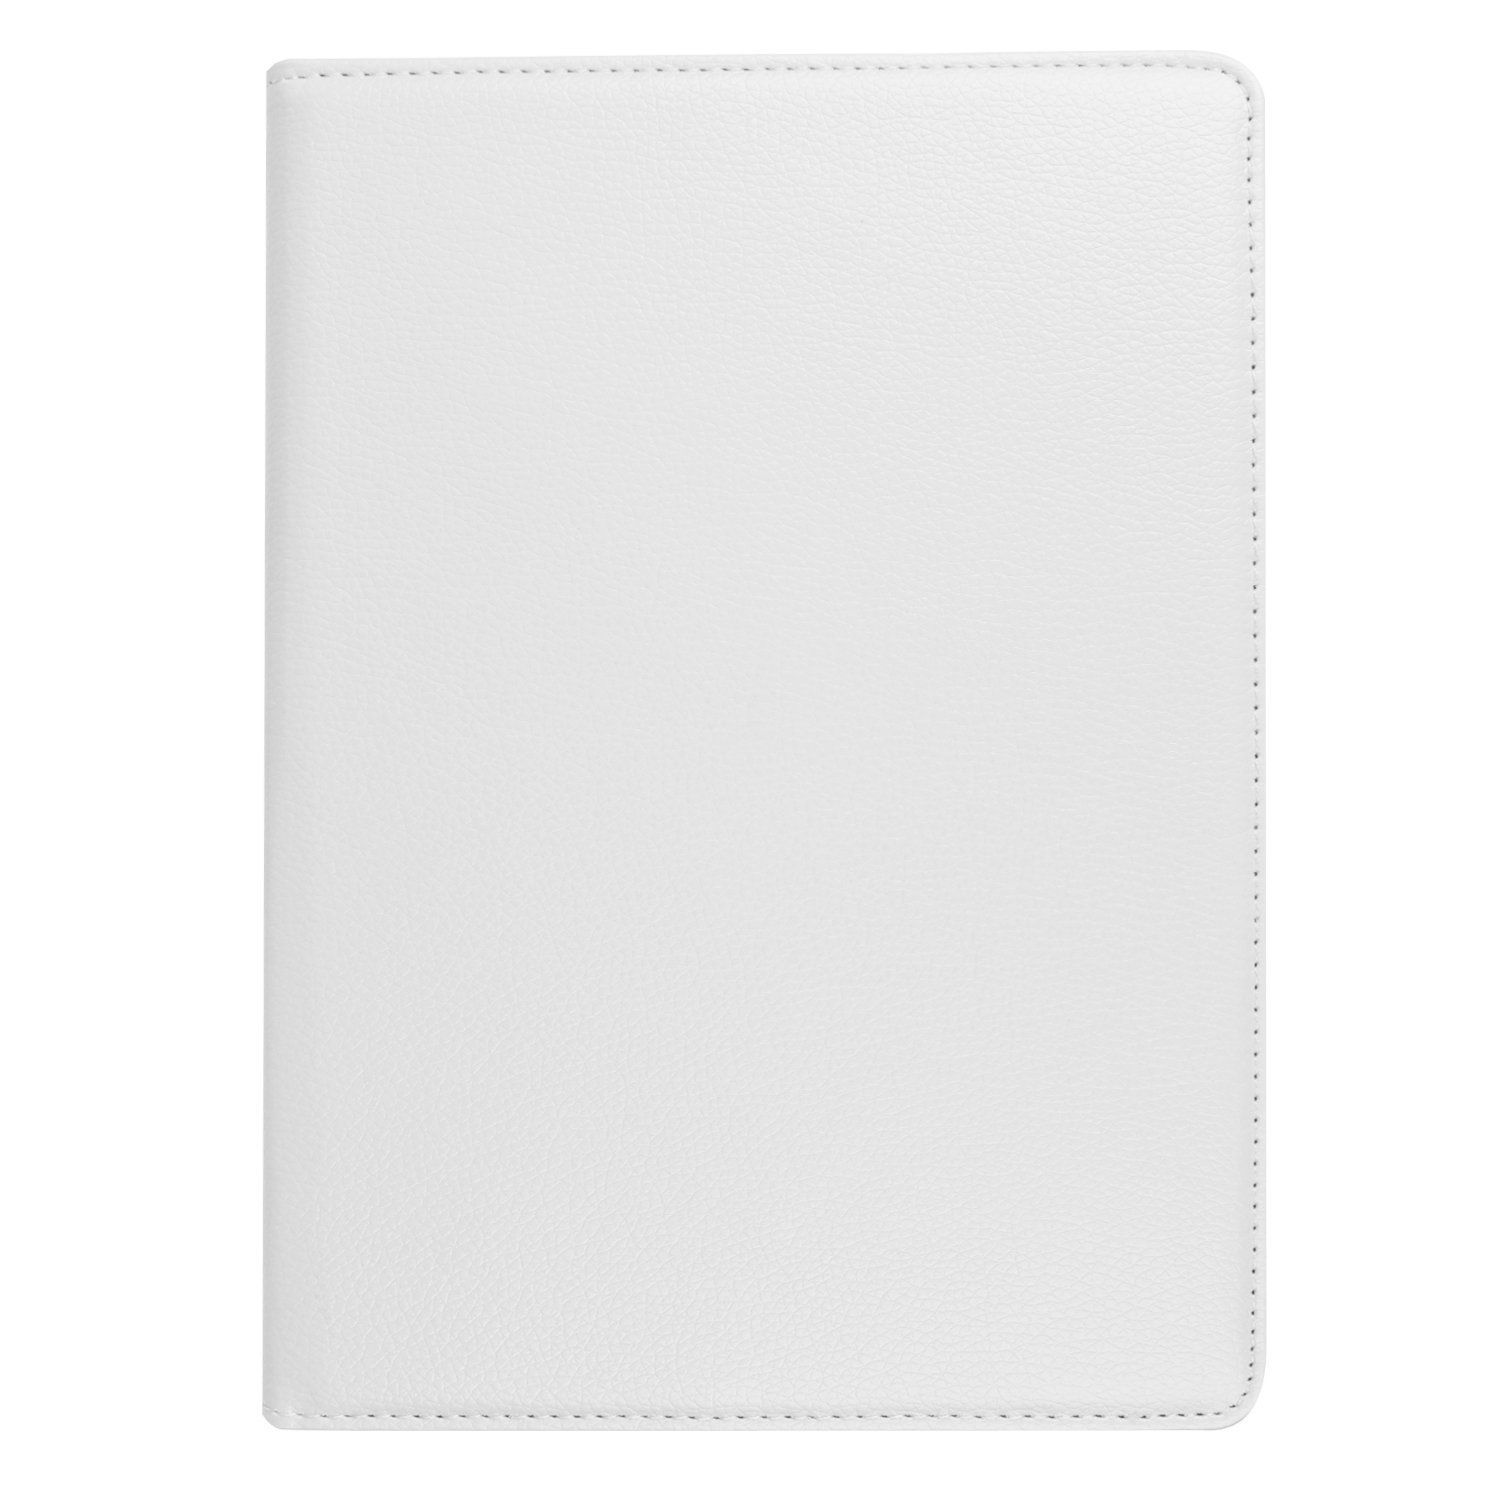 Custodia-per-Apple-iPad-Pro-2017-iPad-Air-3-10-5-Smart-Cover-Case-Custodia-Protettiva miniatura 81